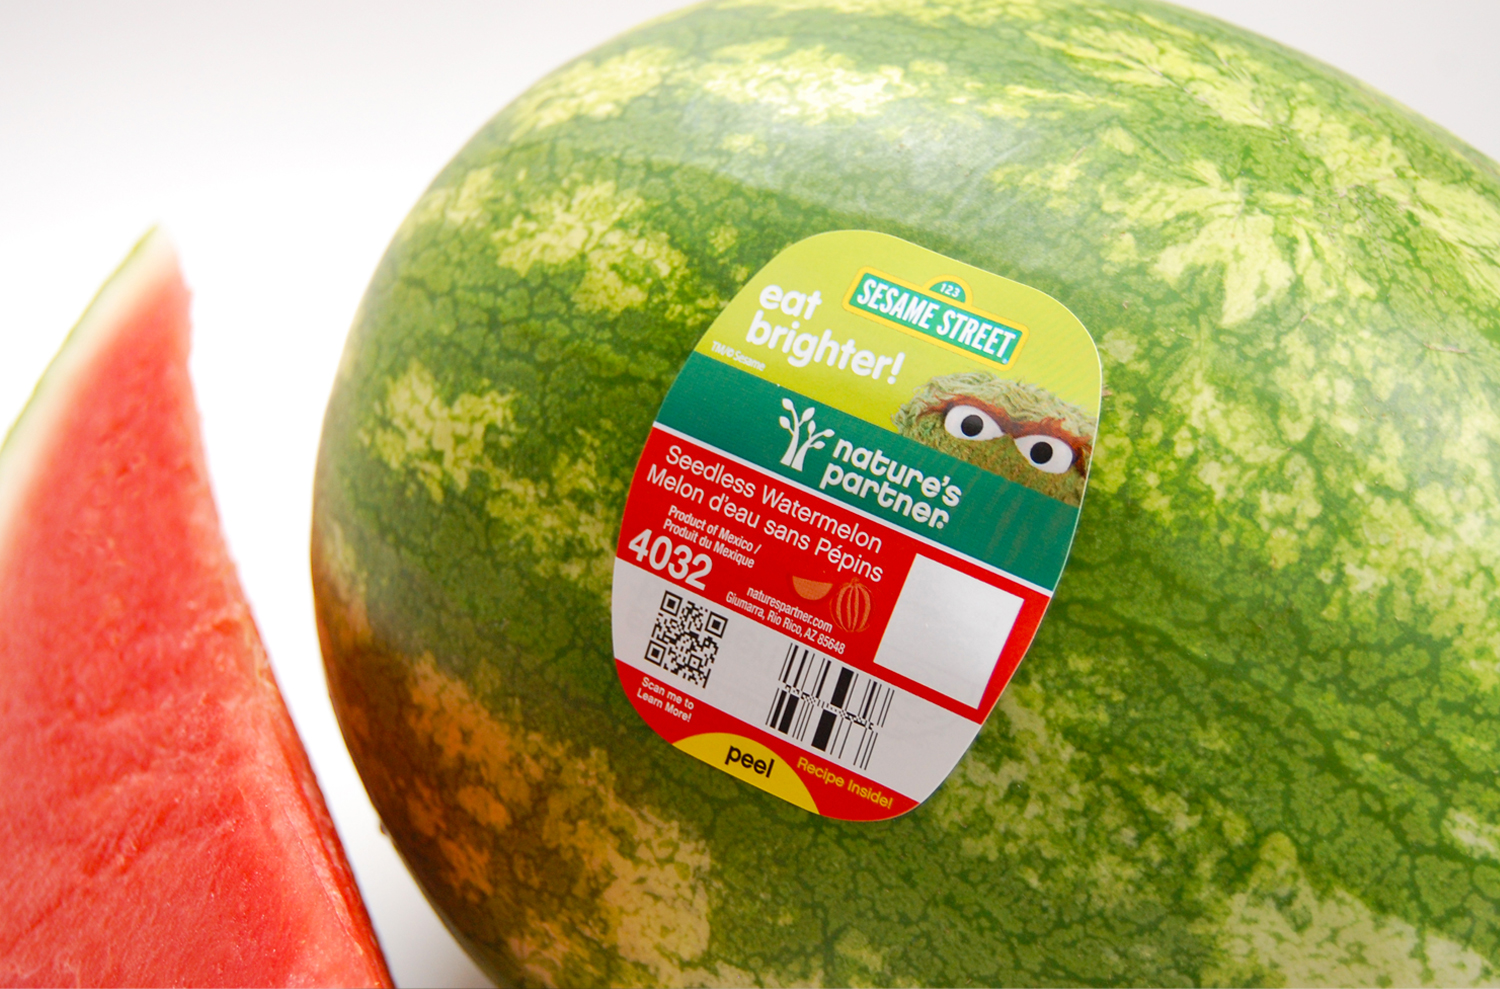 Sesame Street's  Oscar on Nature's Partner watermelons.  Click here to download high resolution image.